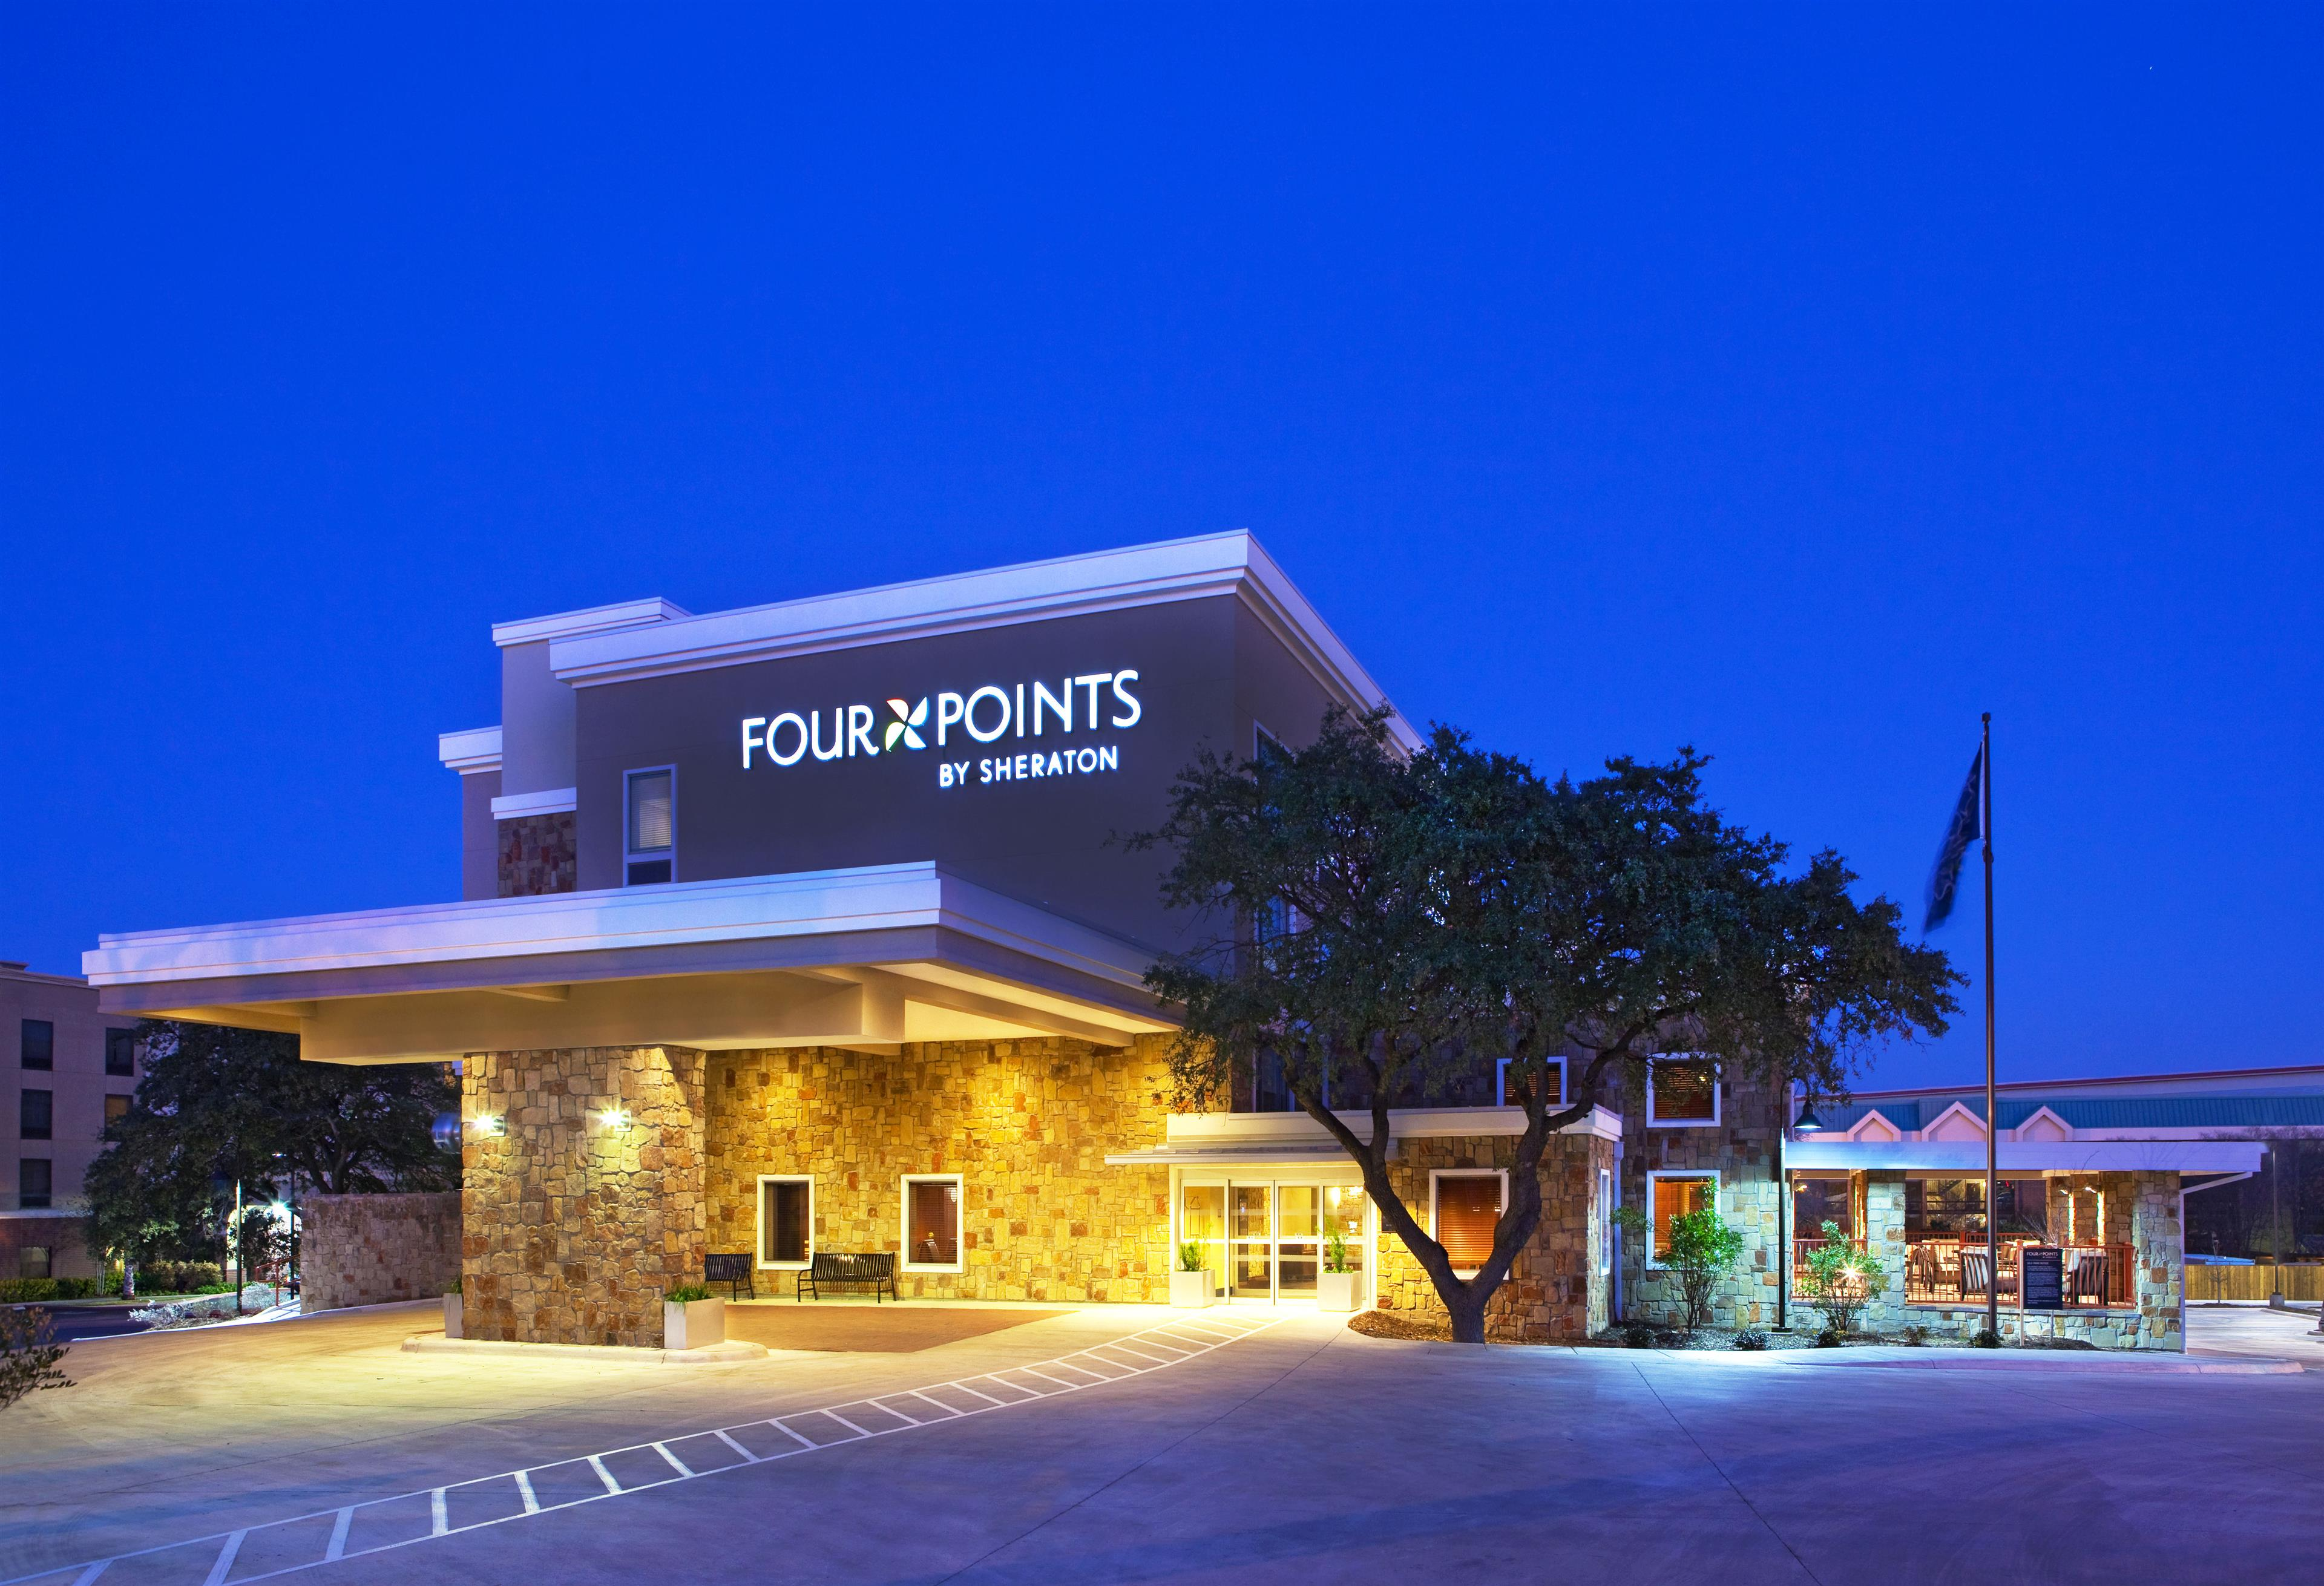 Four Points by Sheraton San Antonio Airport image 1